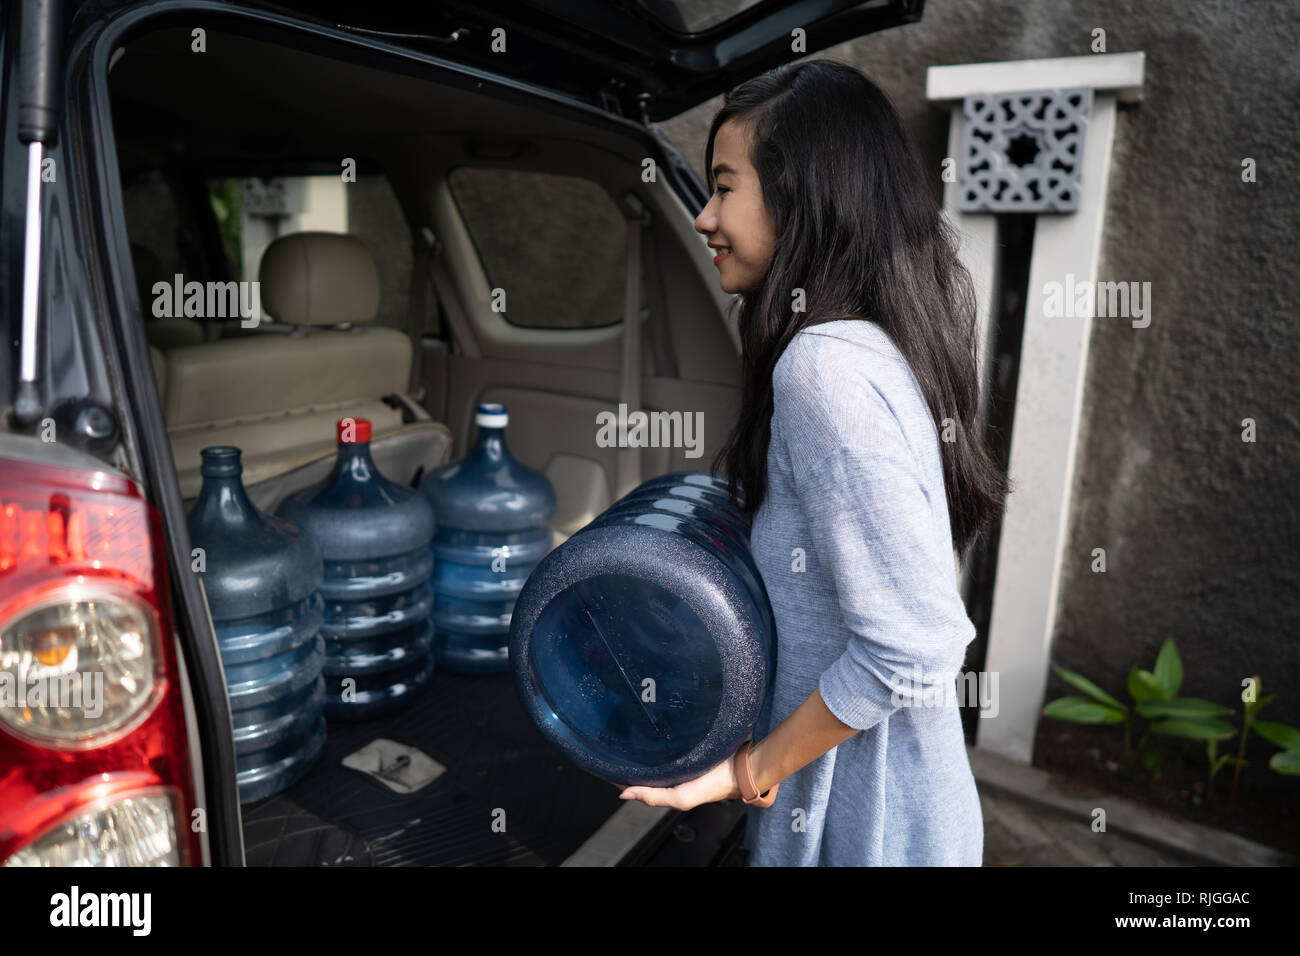 woman carrying a gallon of water put in car trunk - Stock Image